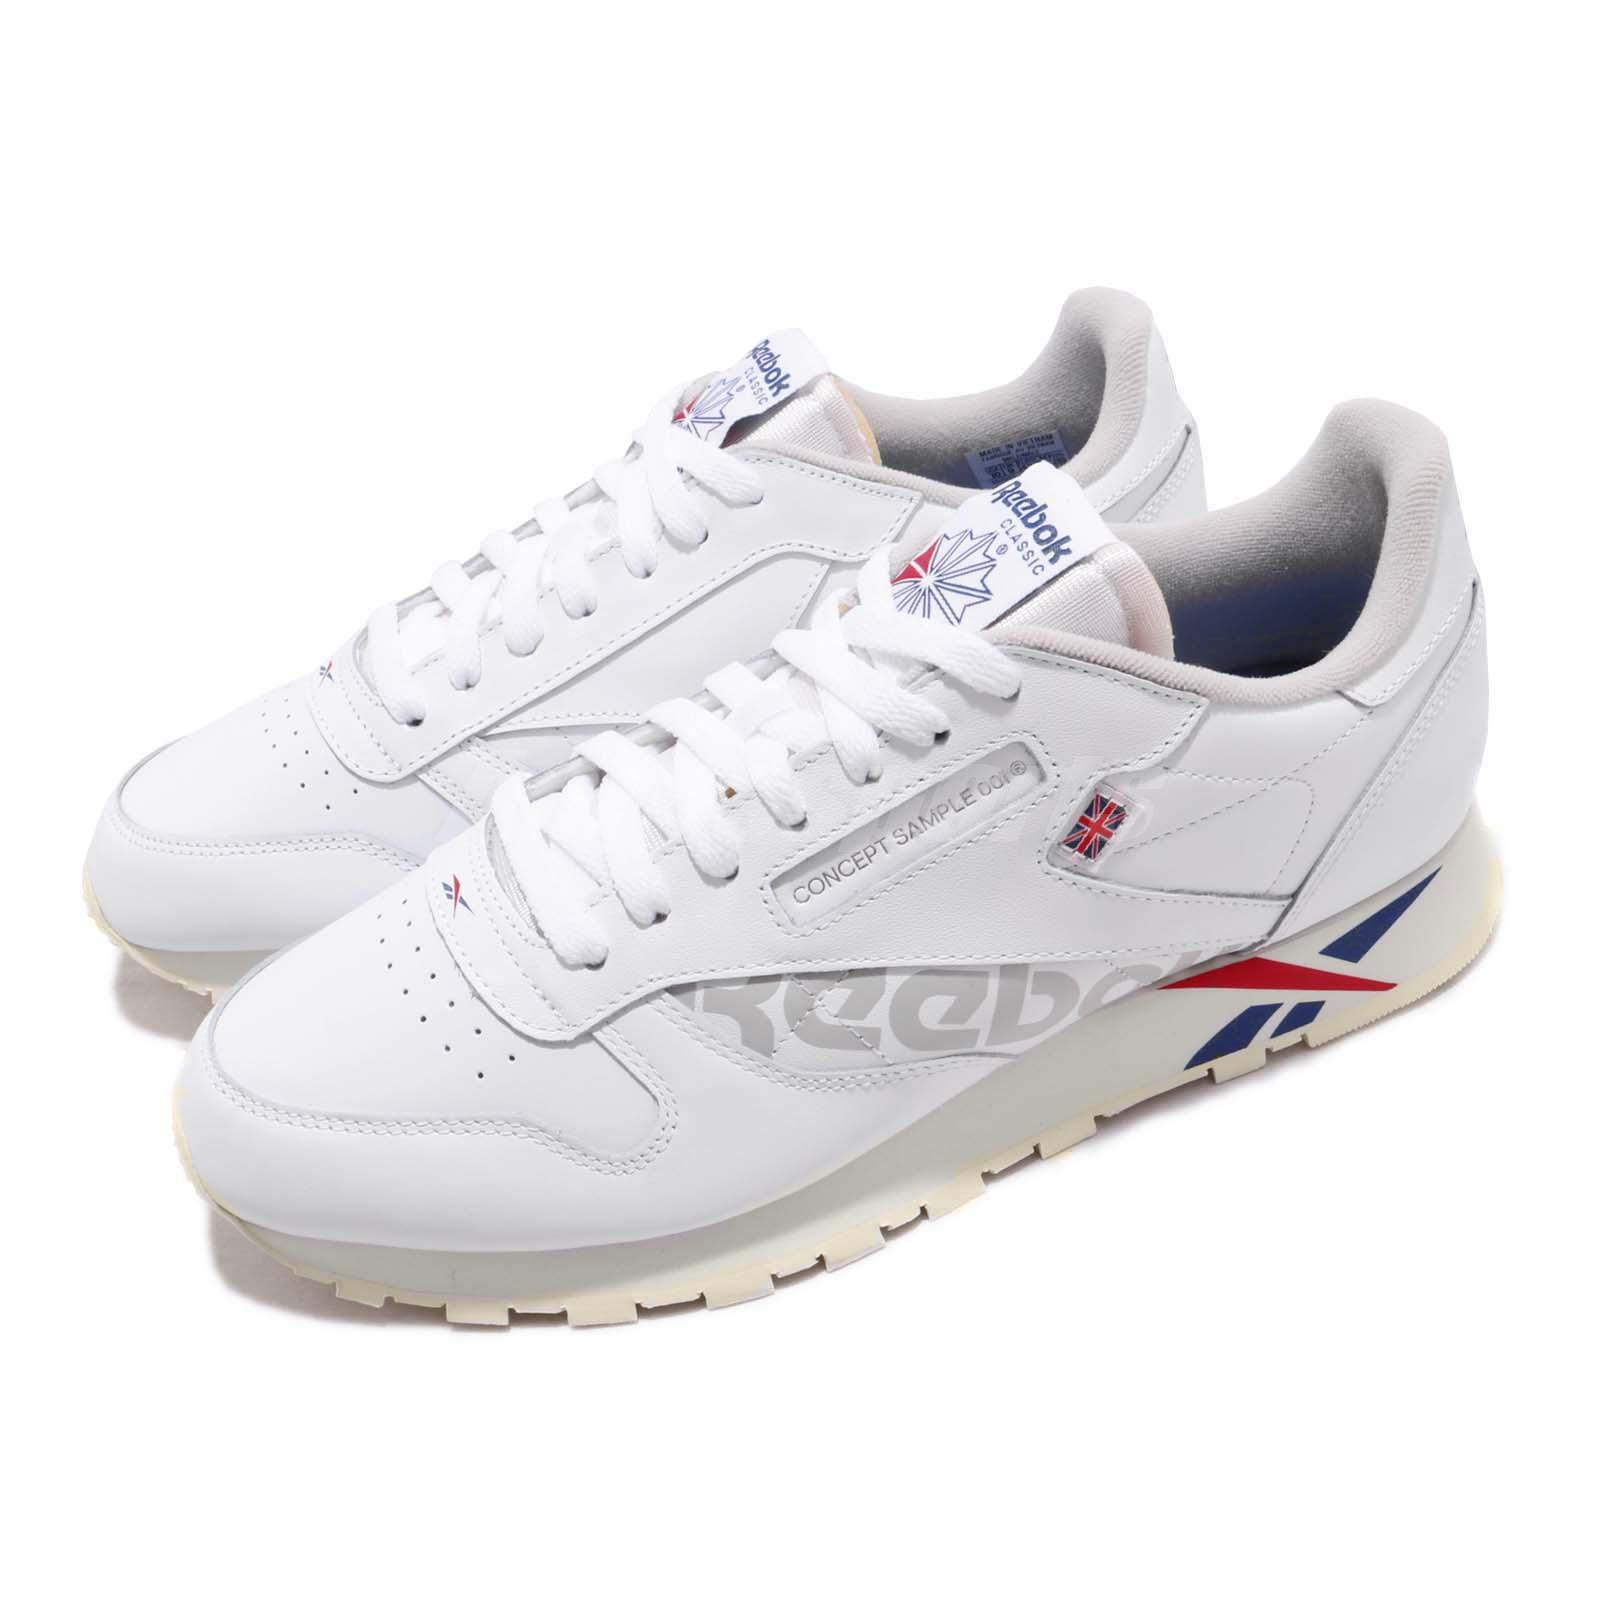 934d941cd4 Details about Reebok Classic Leather Altered White Red Dark Royal Grey  Women Shoes DV5027